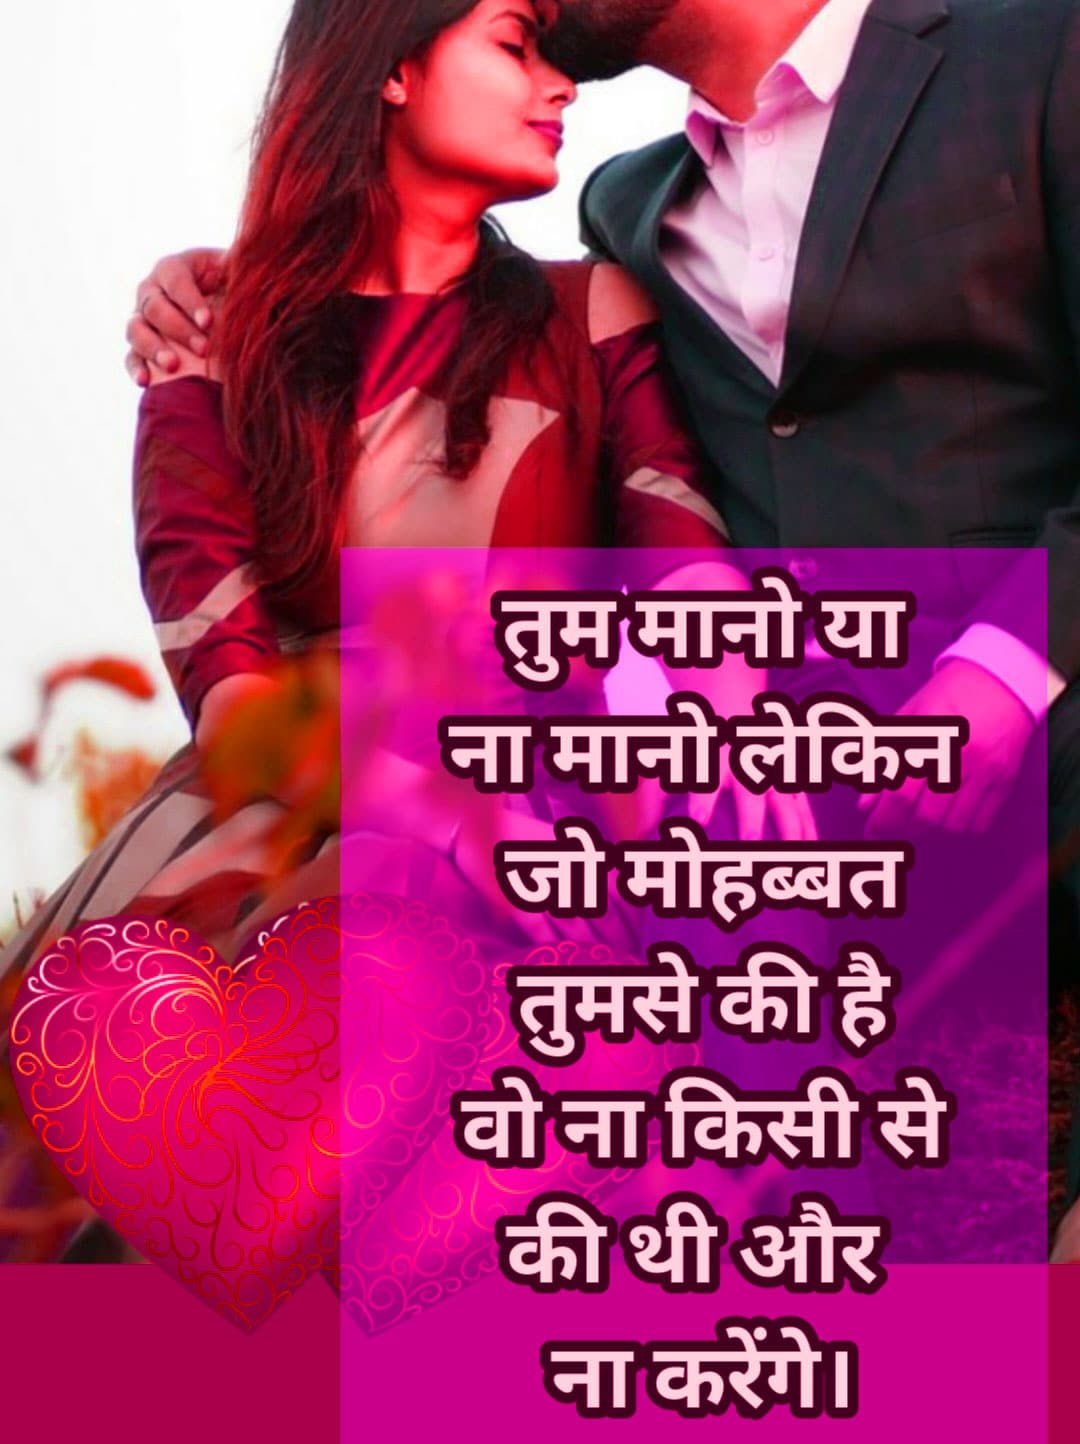 Latest Hindi Shayari Images HD Download 54